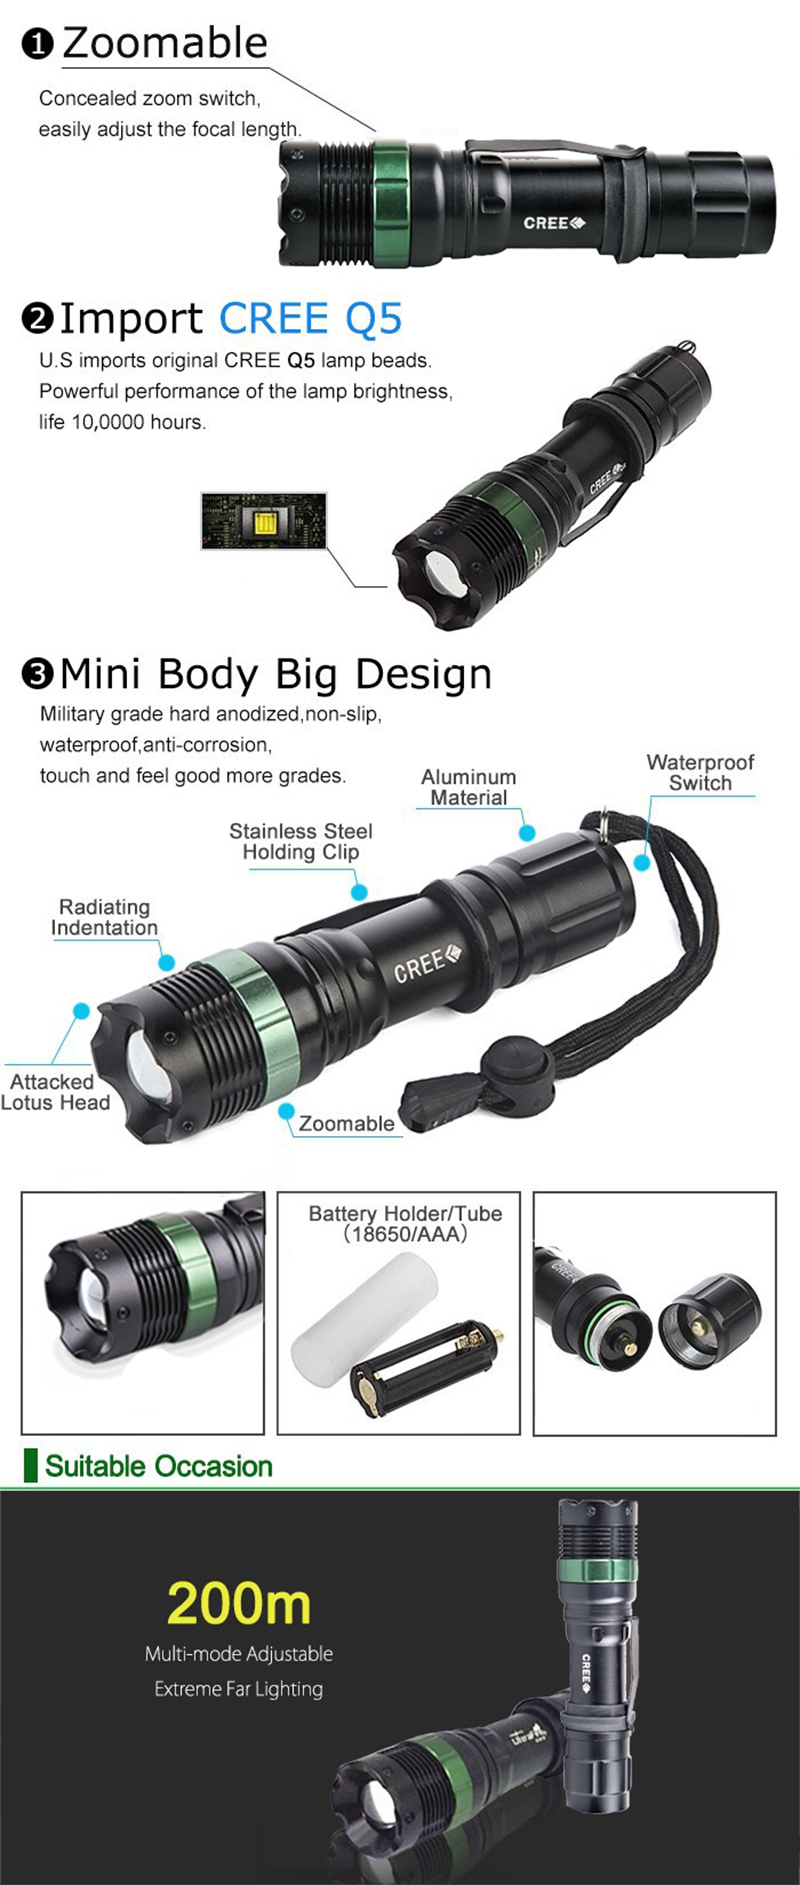 F4 Promotion Best Mini Led Flashlight Super Strong Lumens Lanterna Flash Light Studio Licht Chrome Pro 250 If Not Receive During The Promised Shipping Timeplease Contact Us Before Leave Review We Will Double Check With Post Office And Compemsate